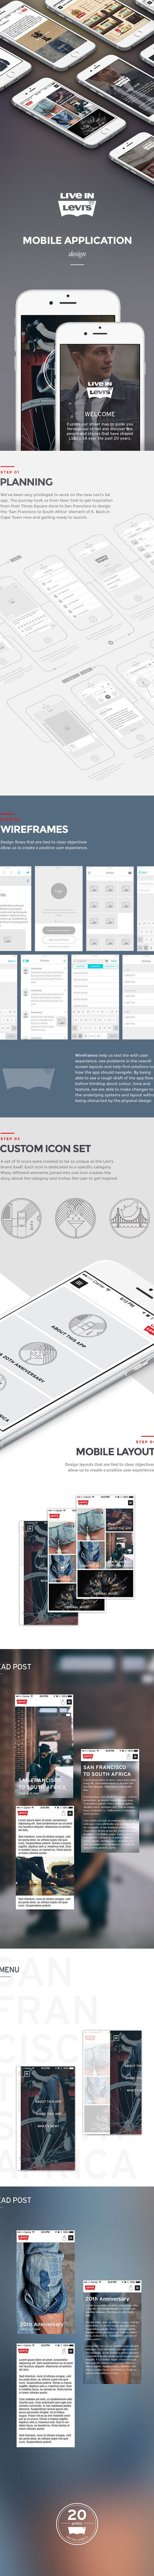 Levi's Mobile App on Behance